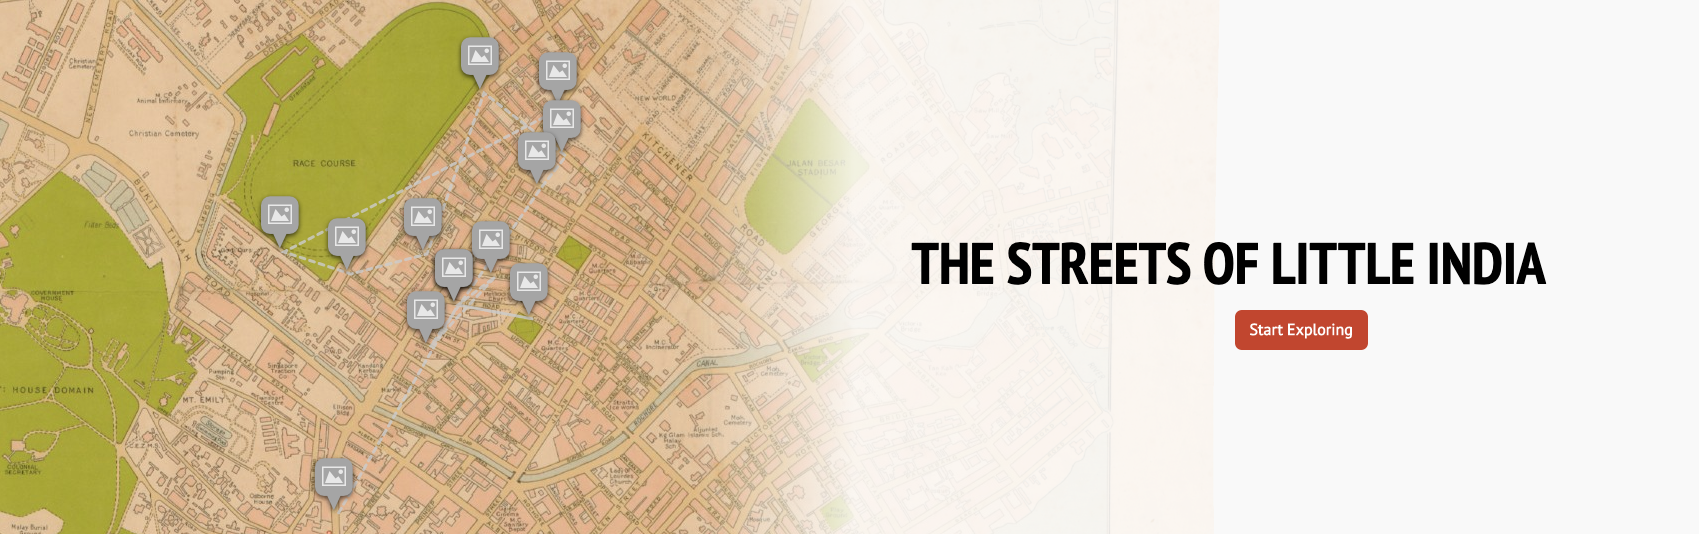 storymap-little-india-streets